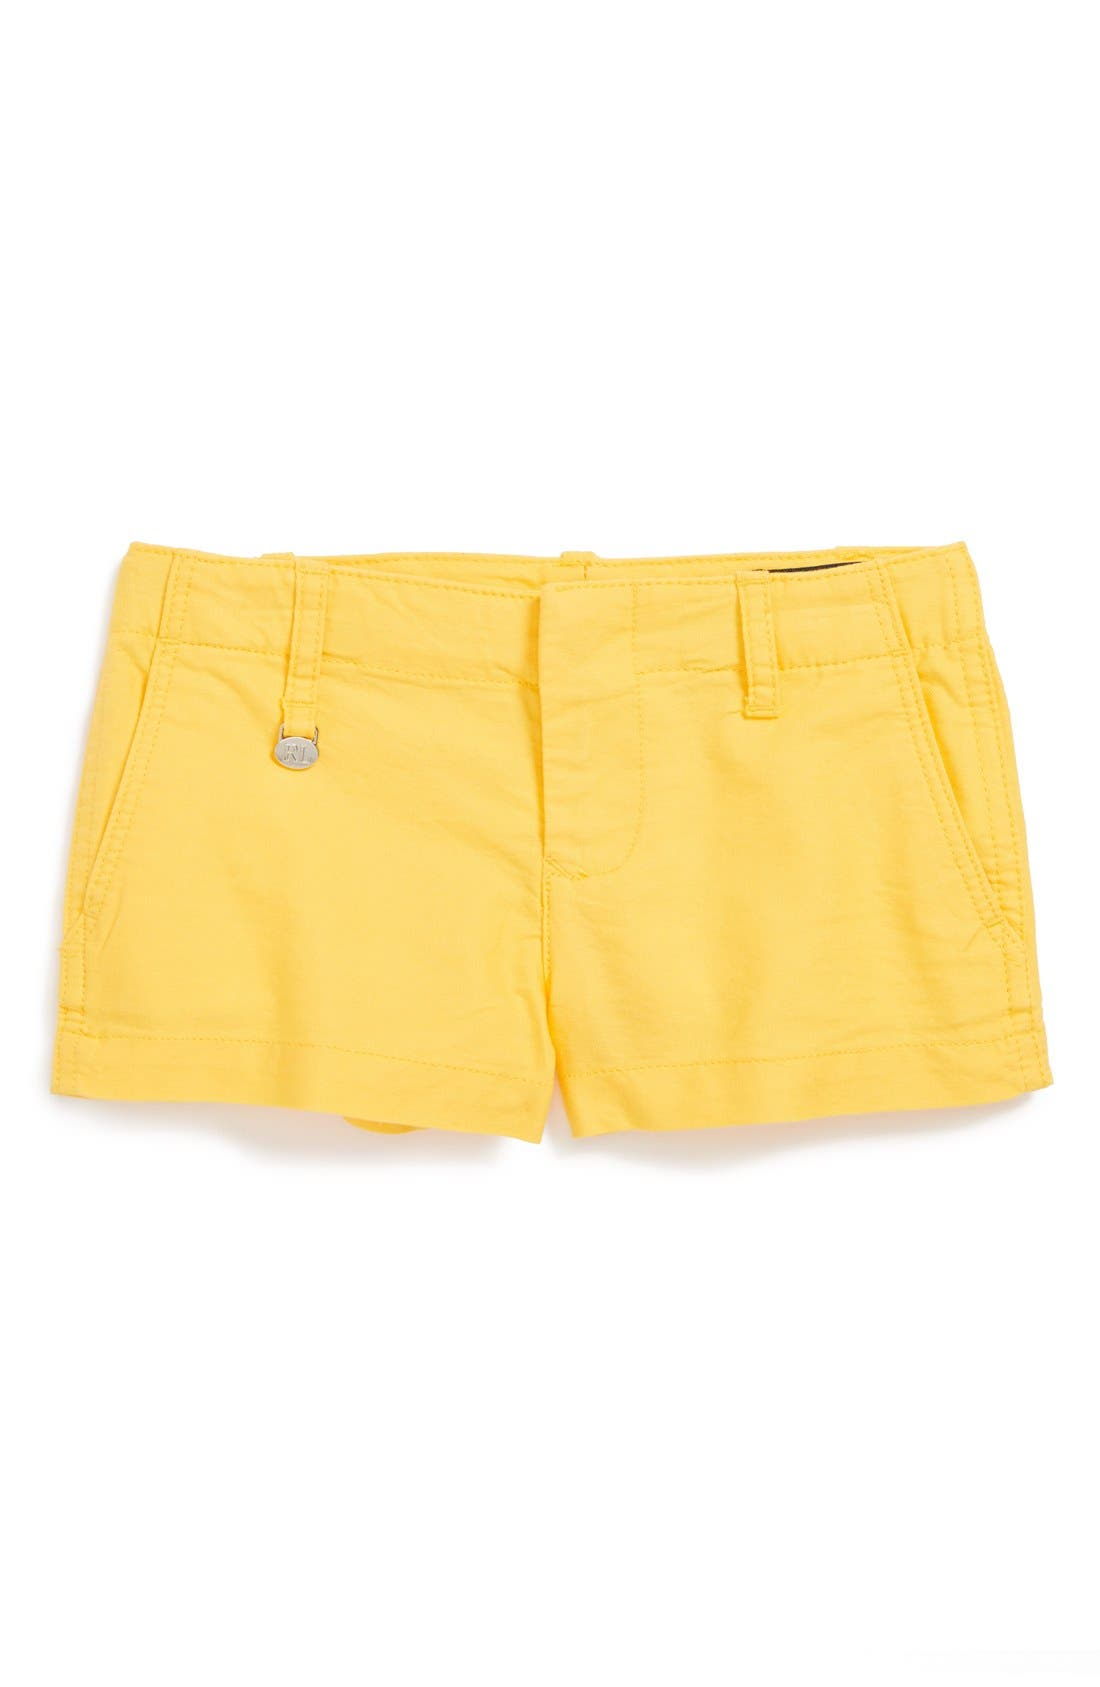 Alternate Image 1 Selected - Ralph Lauren Oxford Cotton Shorts (Toddler Girls)